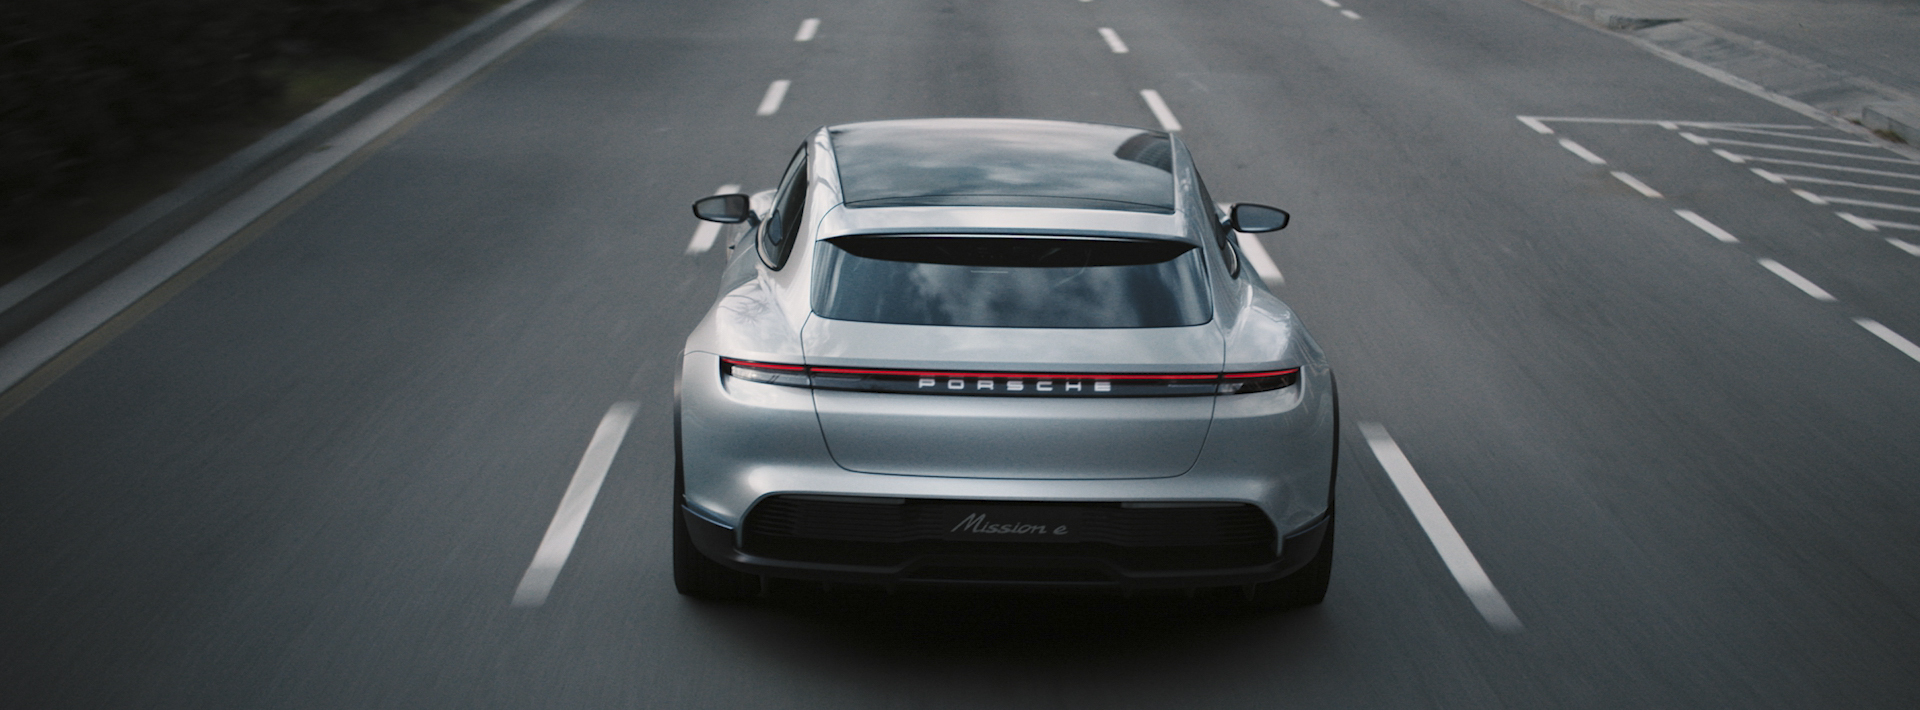 Porsche_E-Performance_Dir_Cut_1.1.38.jpg